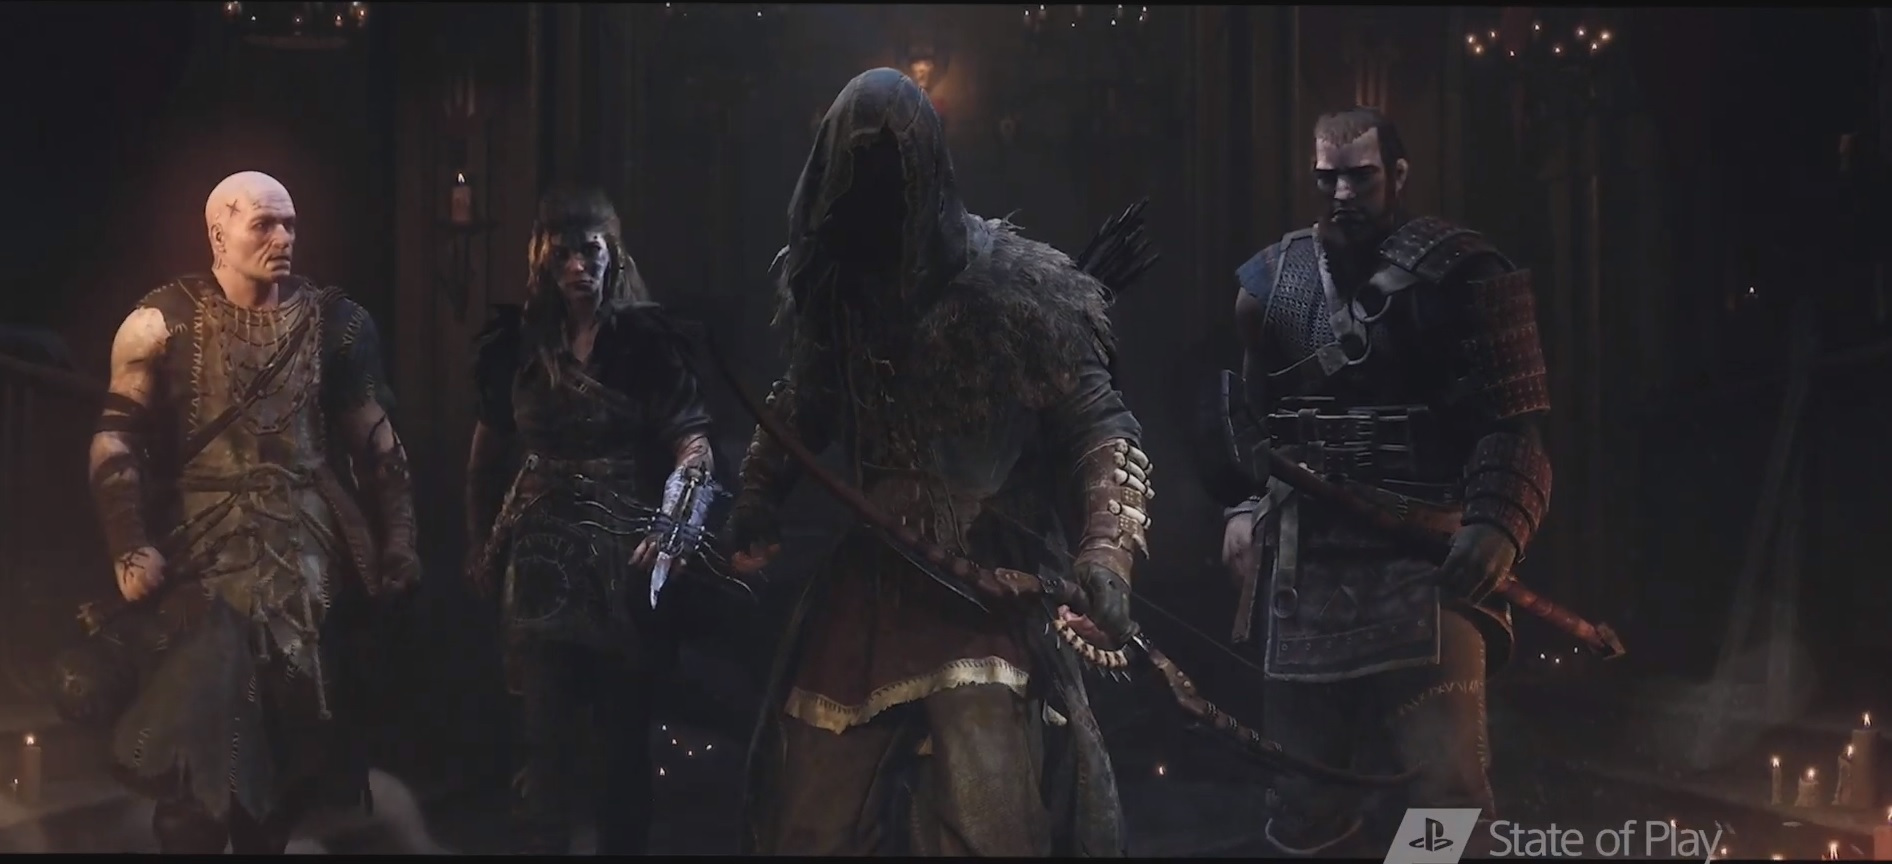 Hood: Outlaws and Legends is a PS5 medieval stealth game